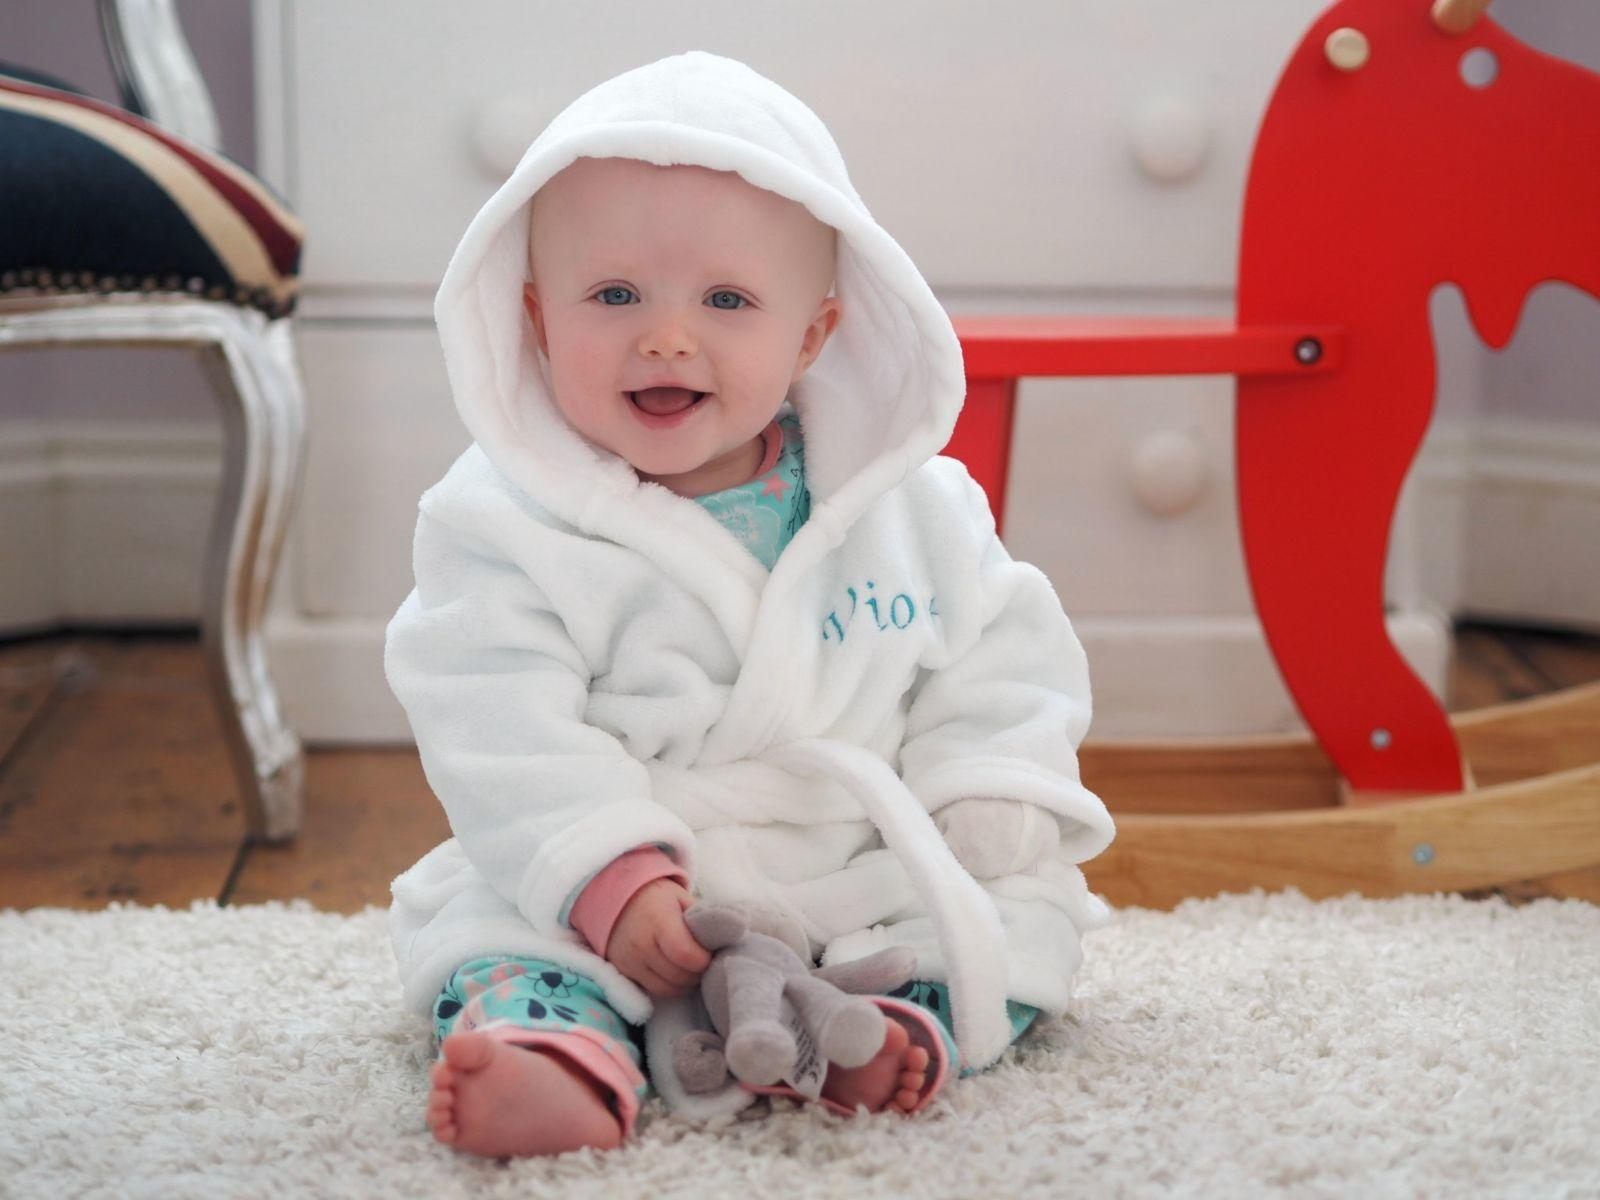 How to cope when your baby has a cold